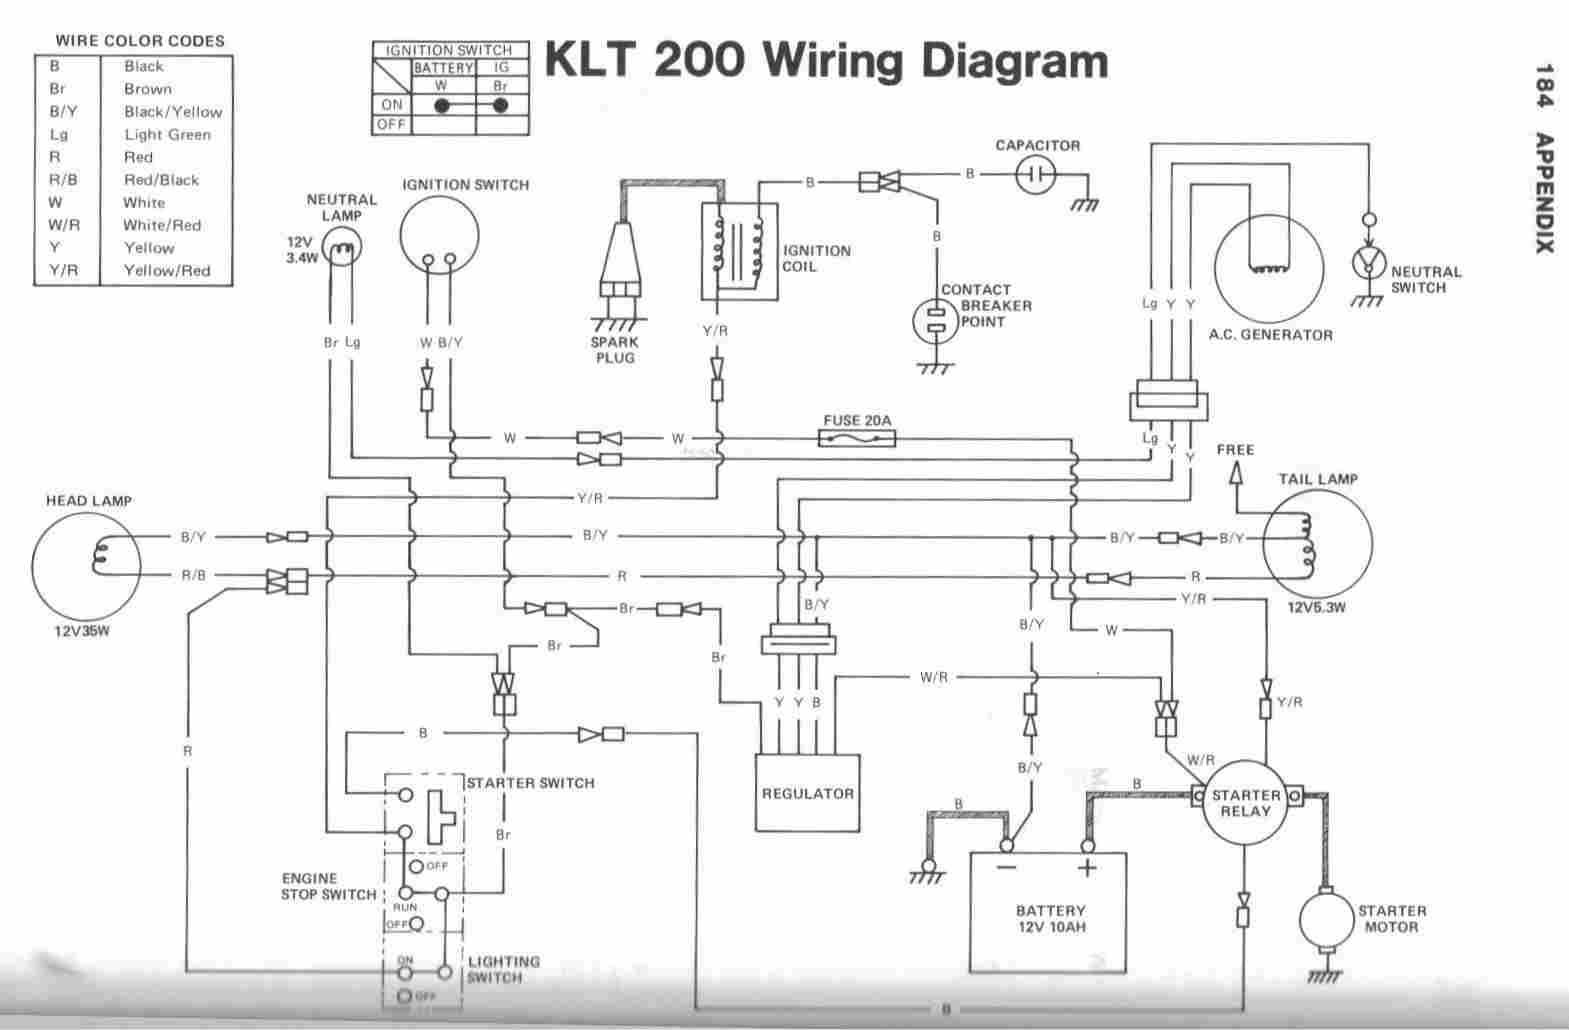 2869034594ce054a636782e5c44b61b4 residential electrical wiring diagrams pdf easy routing cool schematic wiring diagram at reclaimingppi.co